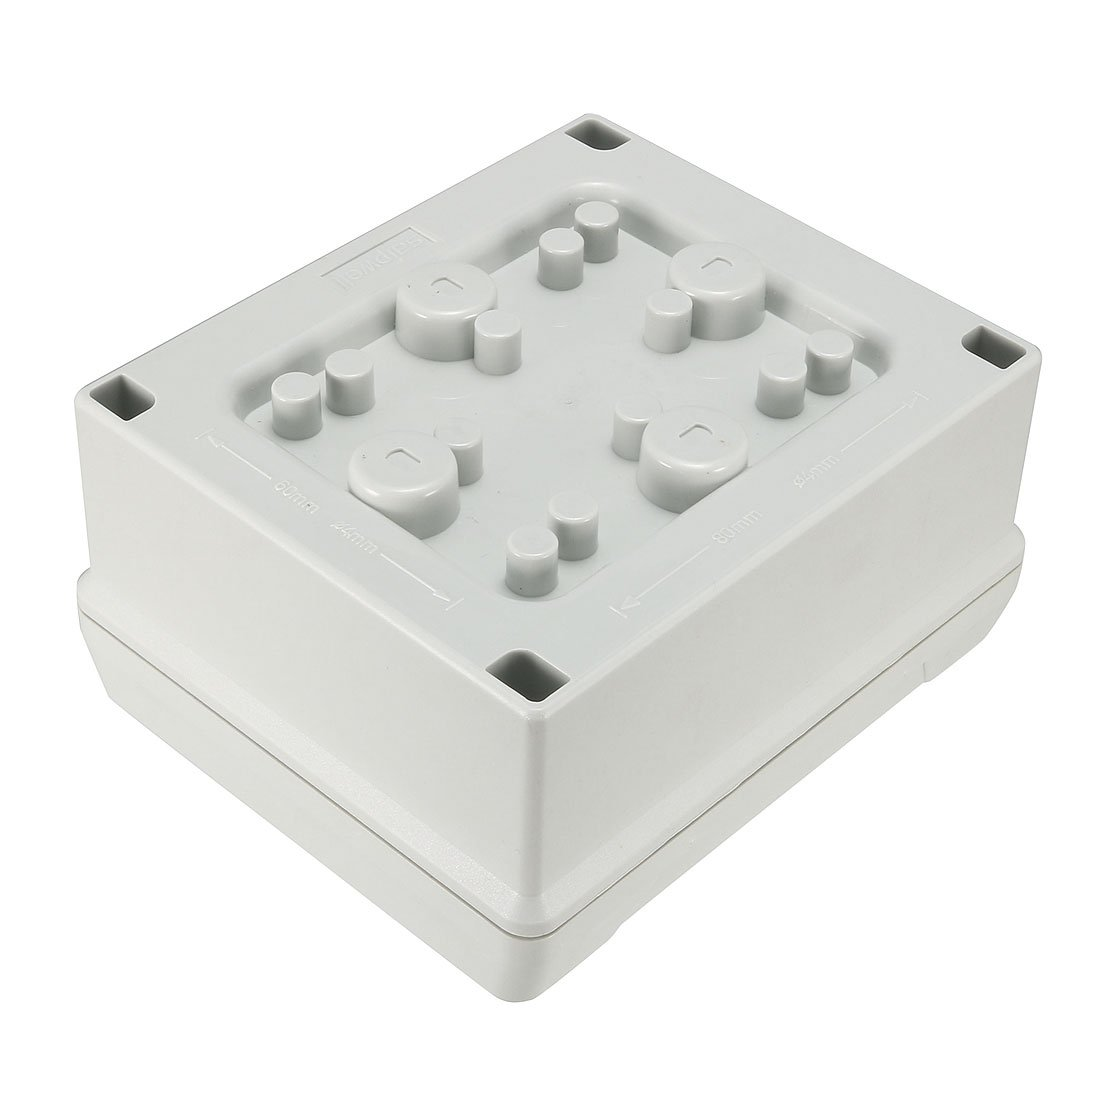 uxcell 5.5''x4.7''x2.8''(139mmx119mmx70mm) ABS Flame Retardant Dustproof IP65 Junction Box Universal Project Enclosure w 5Terminal by uxcell (Image #3)